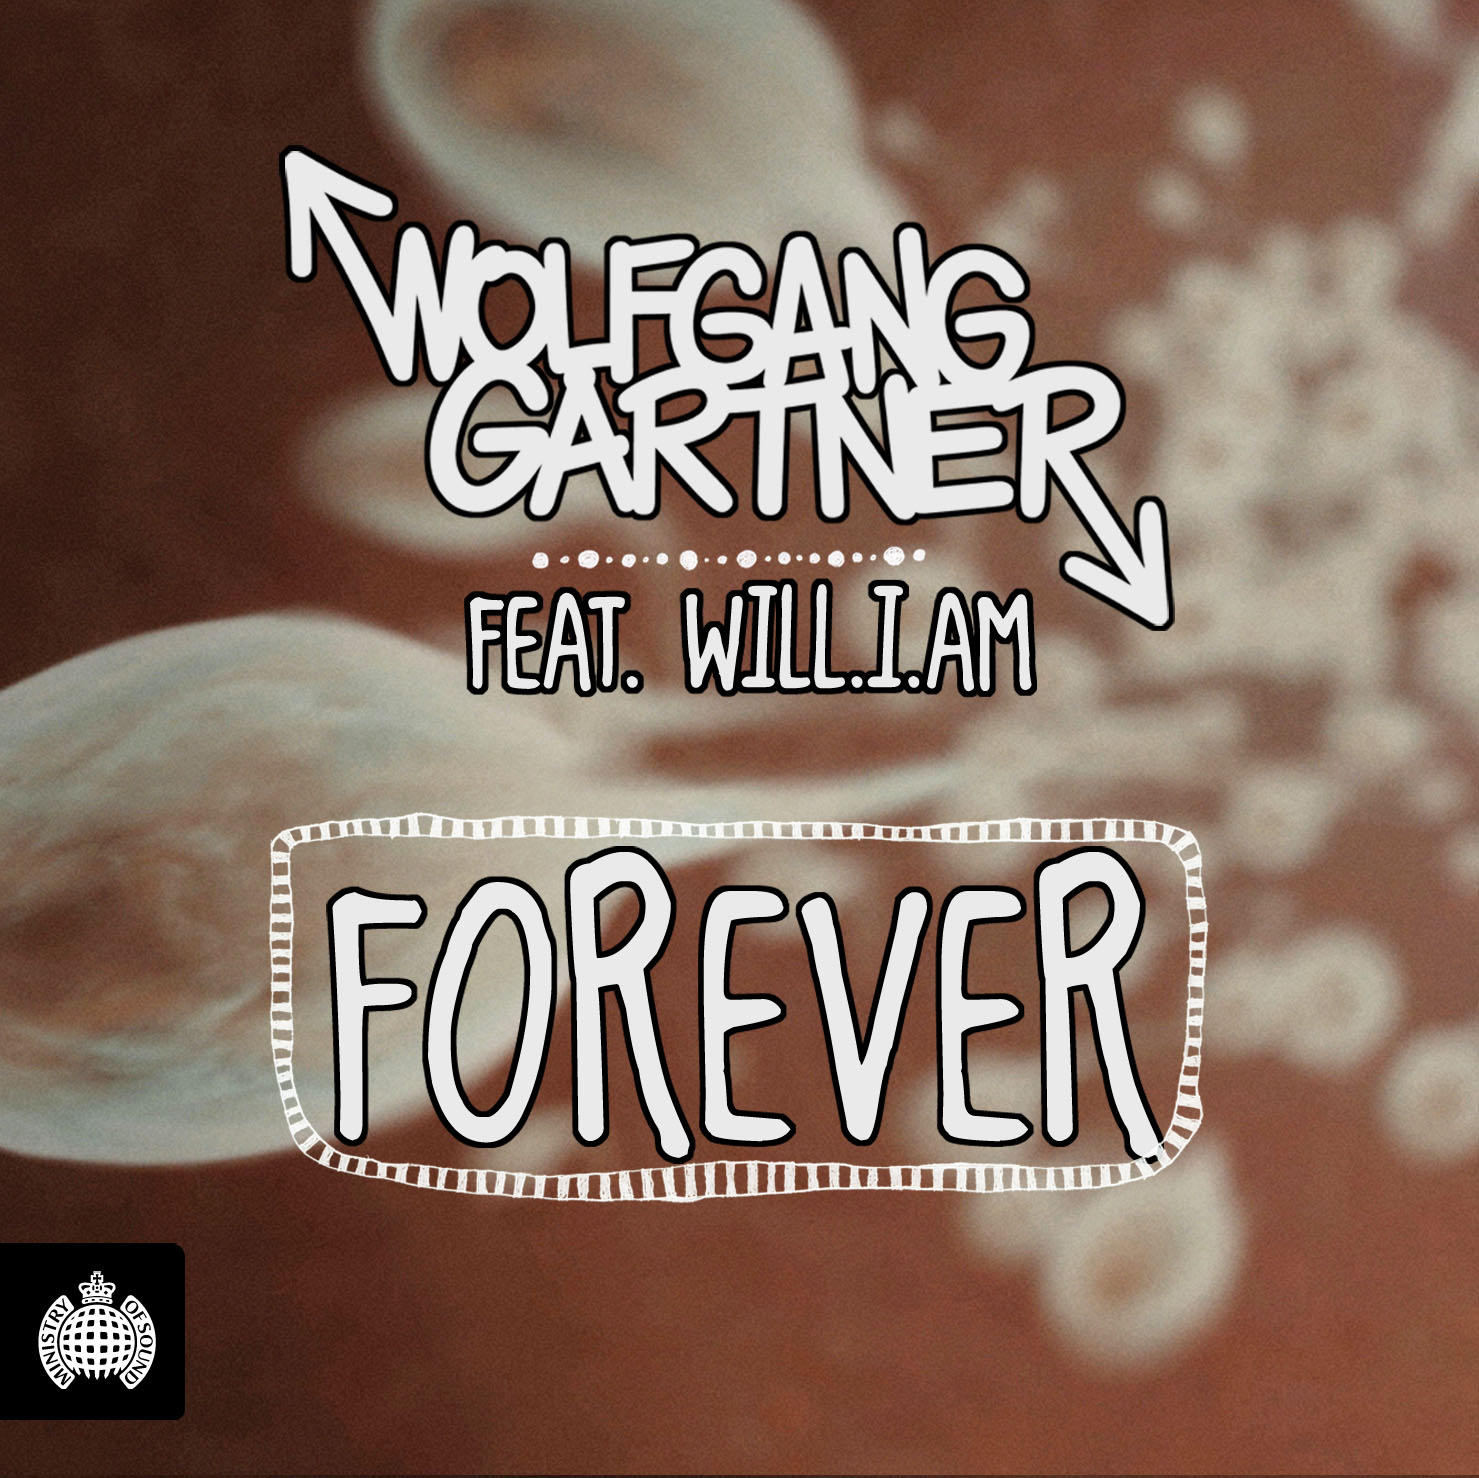 FREE MP3s: Wolfgang Gartner ft. will.i.am - Forever (Nook N Sling & Tom Starr Remixes))